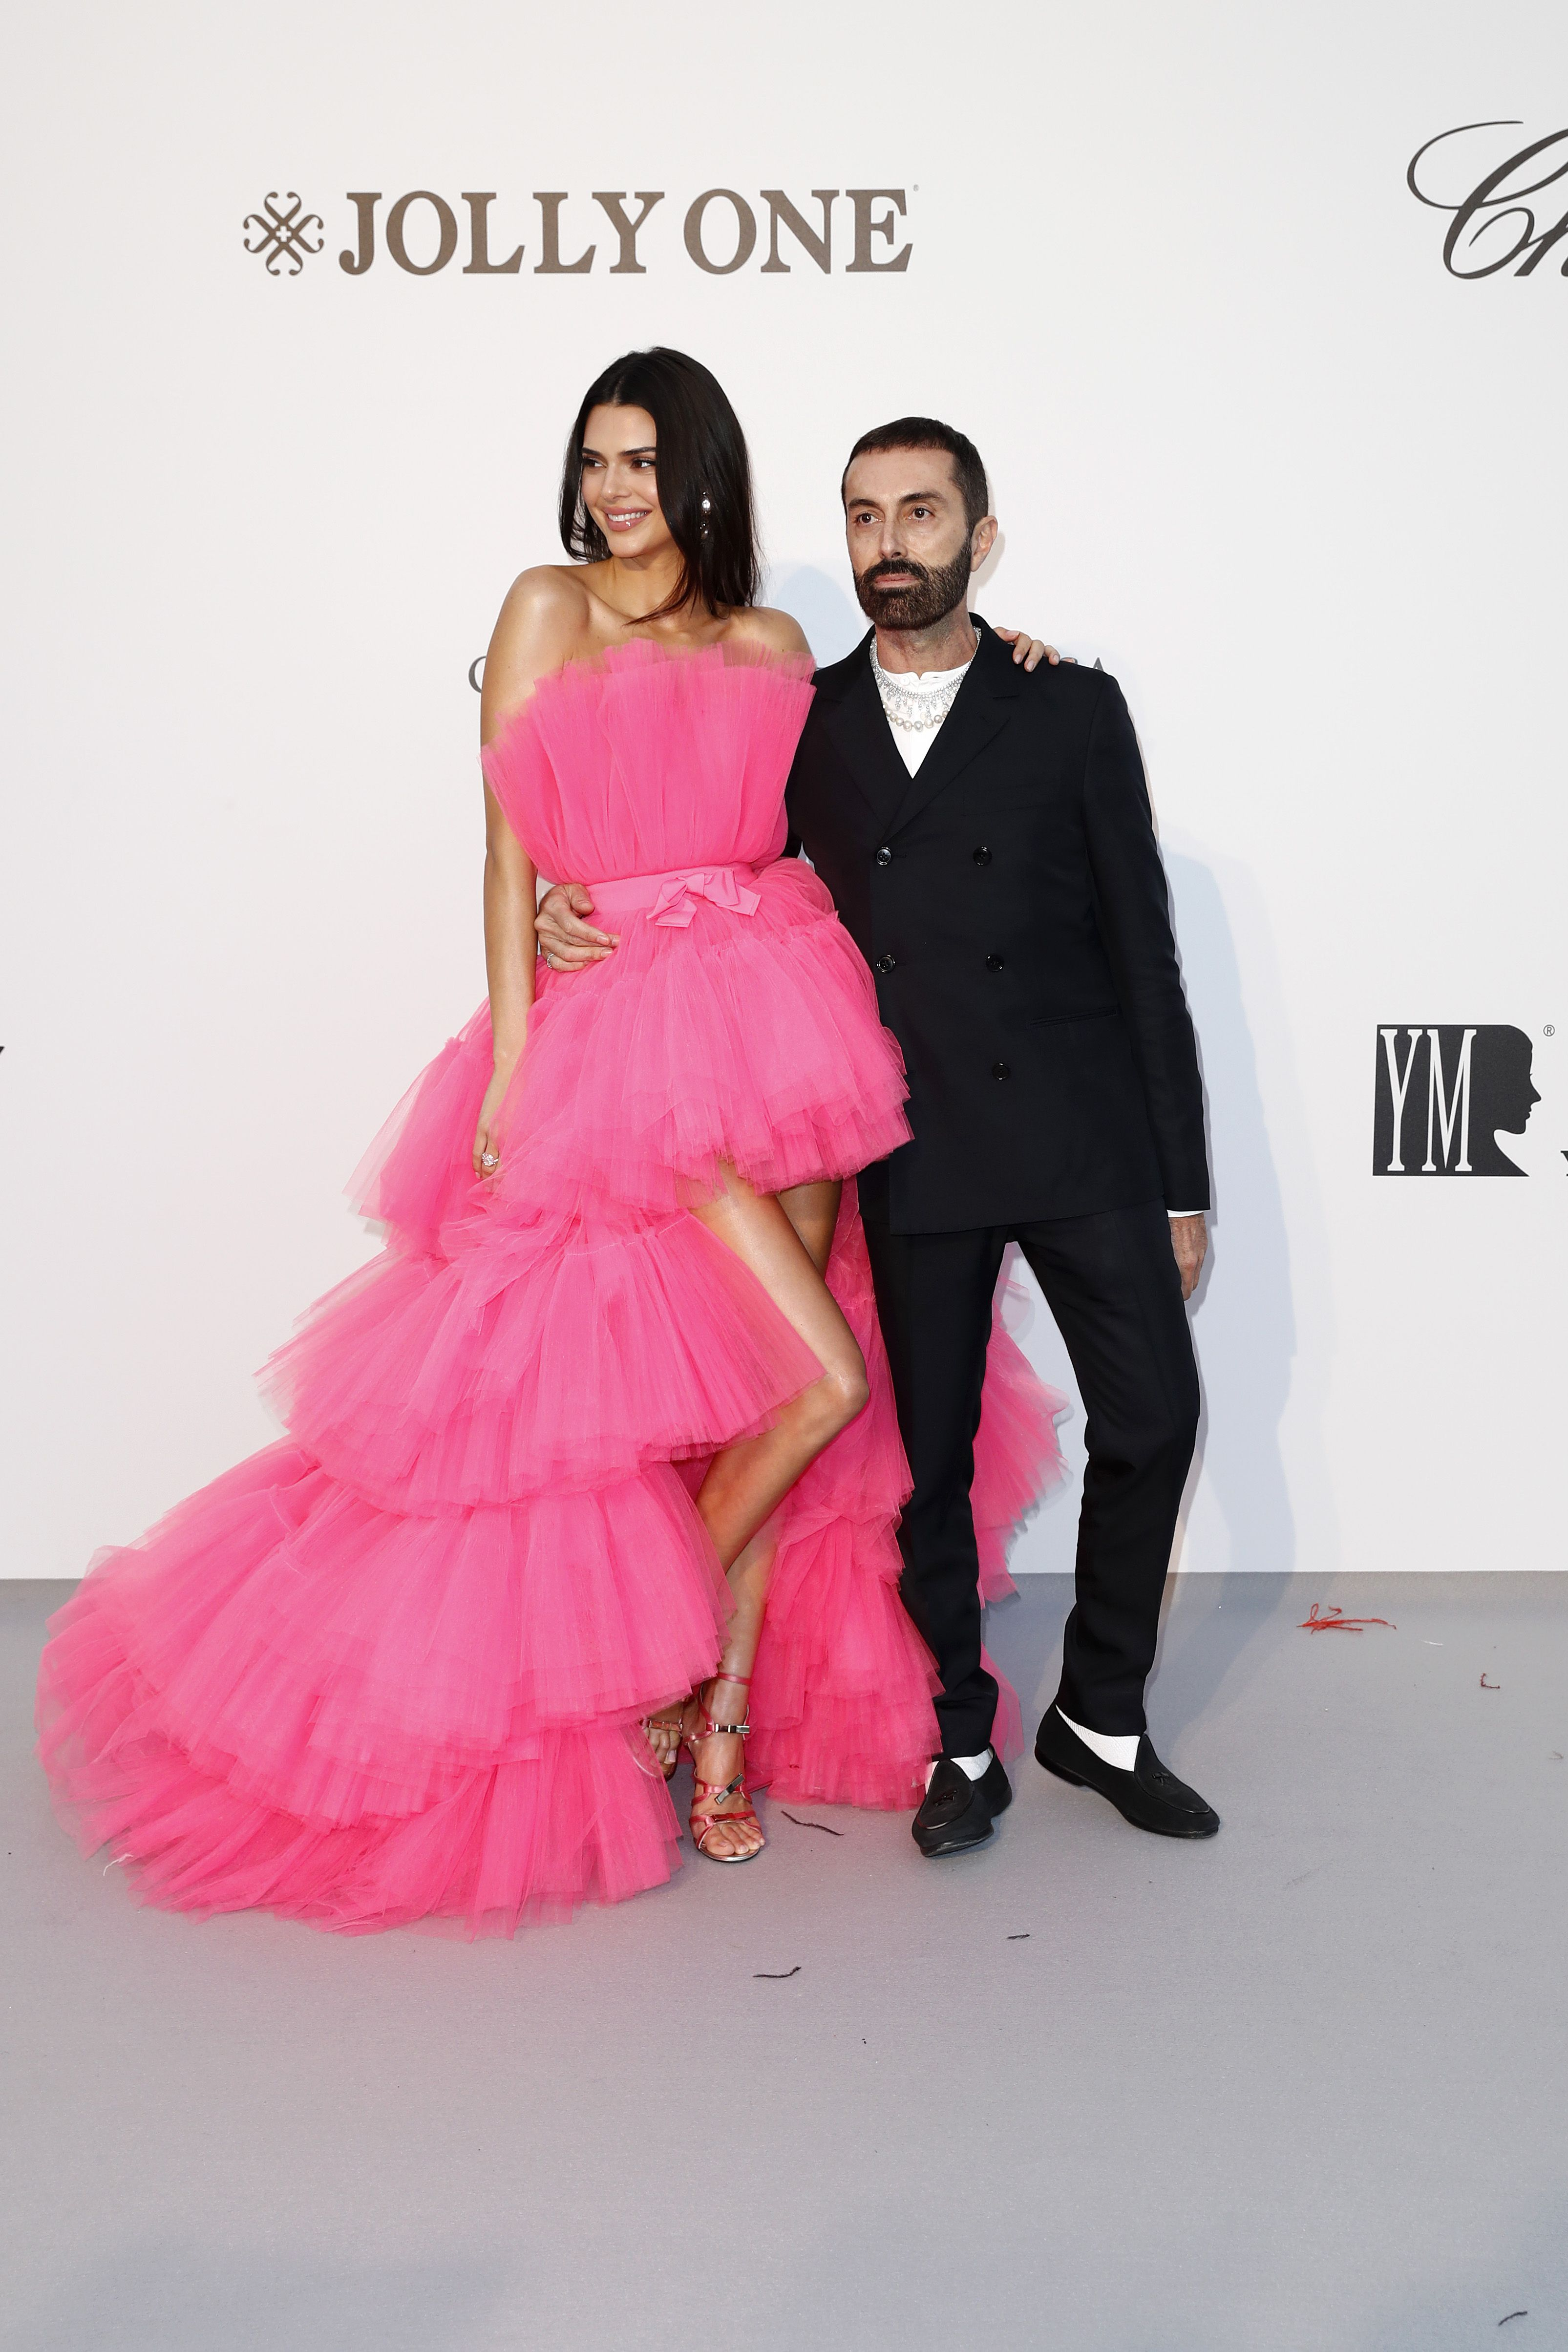 Kendall Jenner wears Giambattista Valli x H&M to the amfAR gala with the designer.